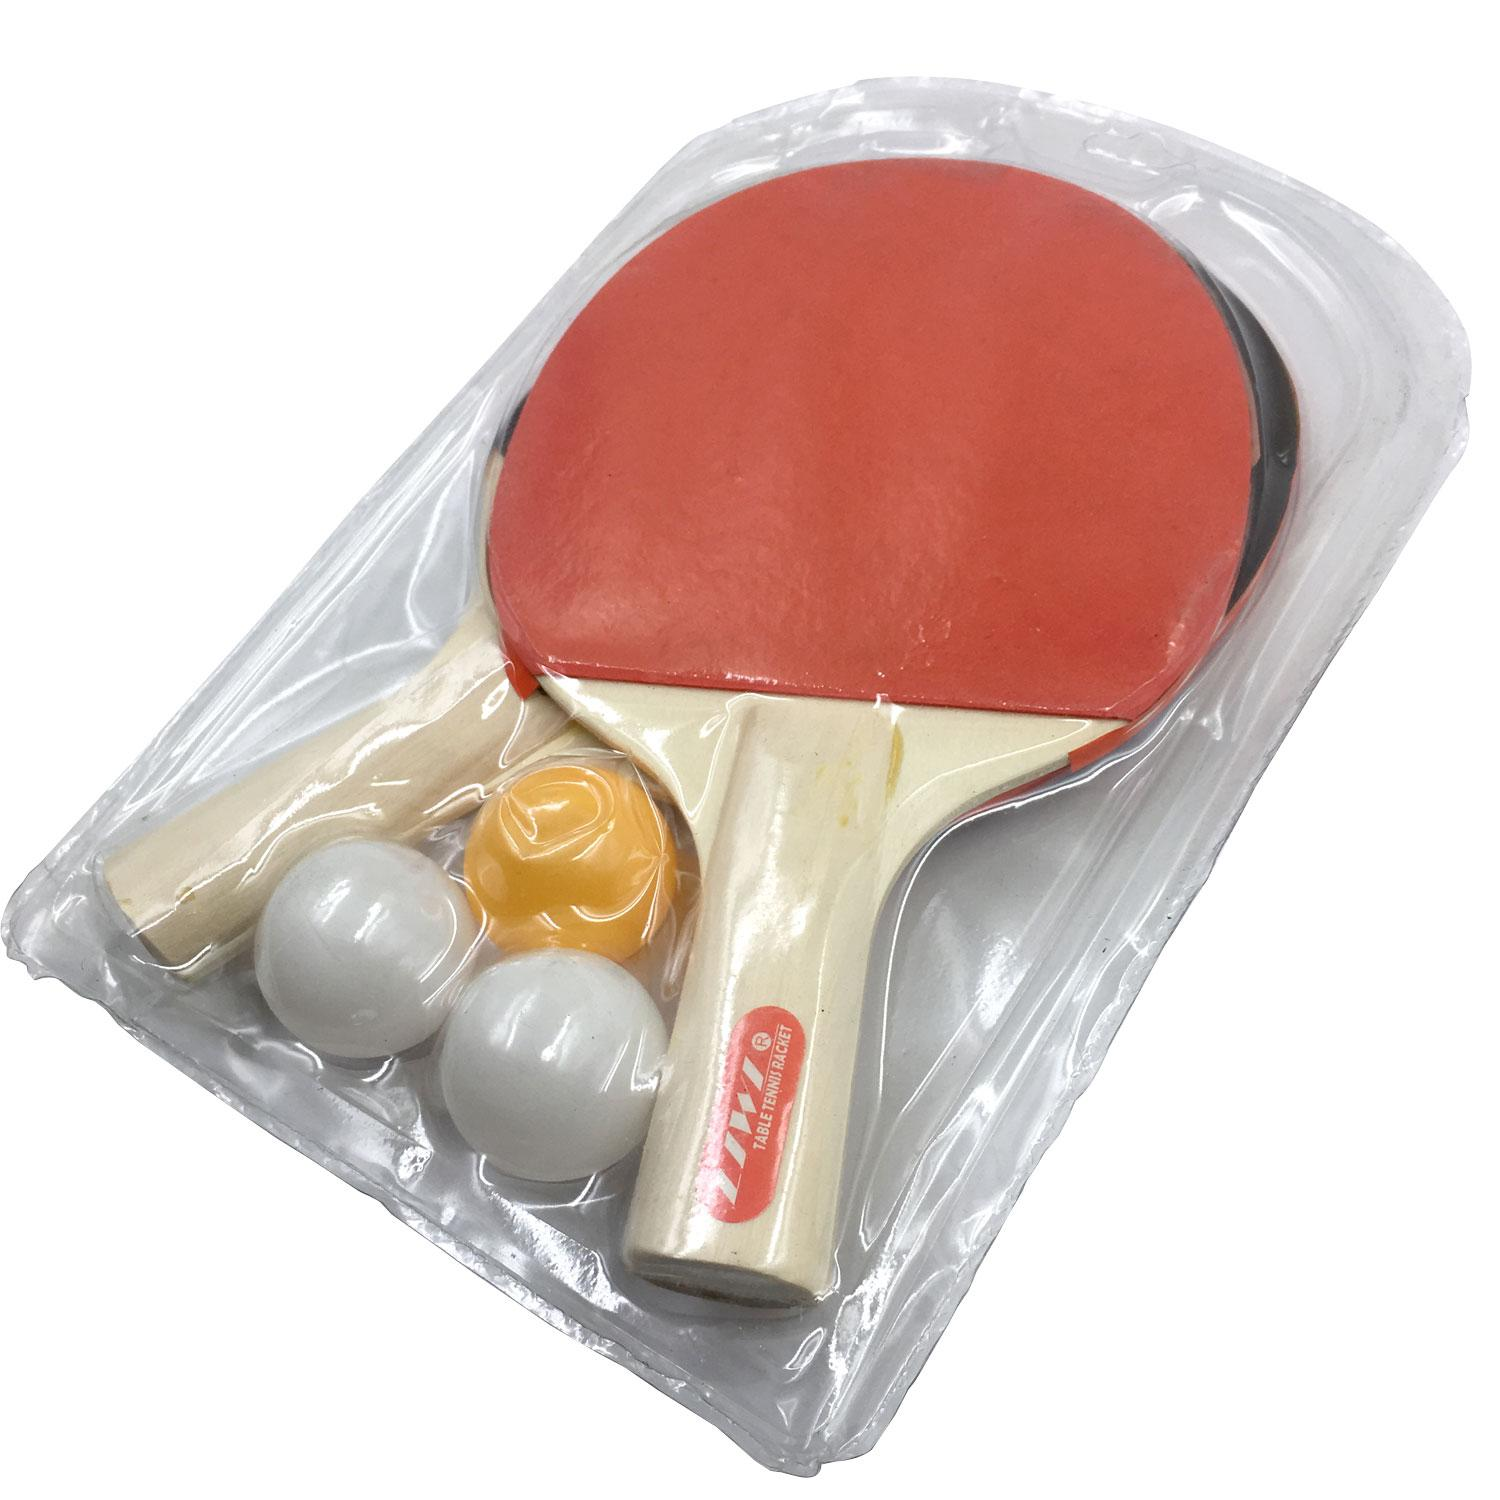 Beginner Table Tennis Racket with 3 balls - 71105